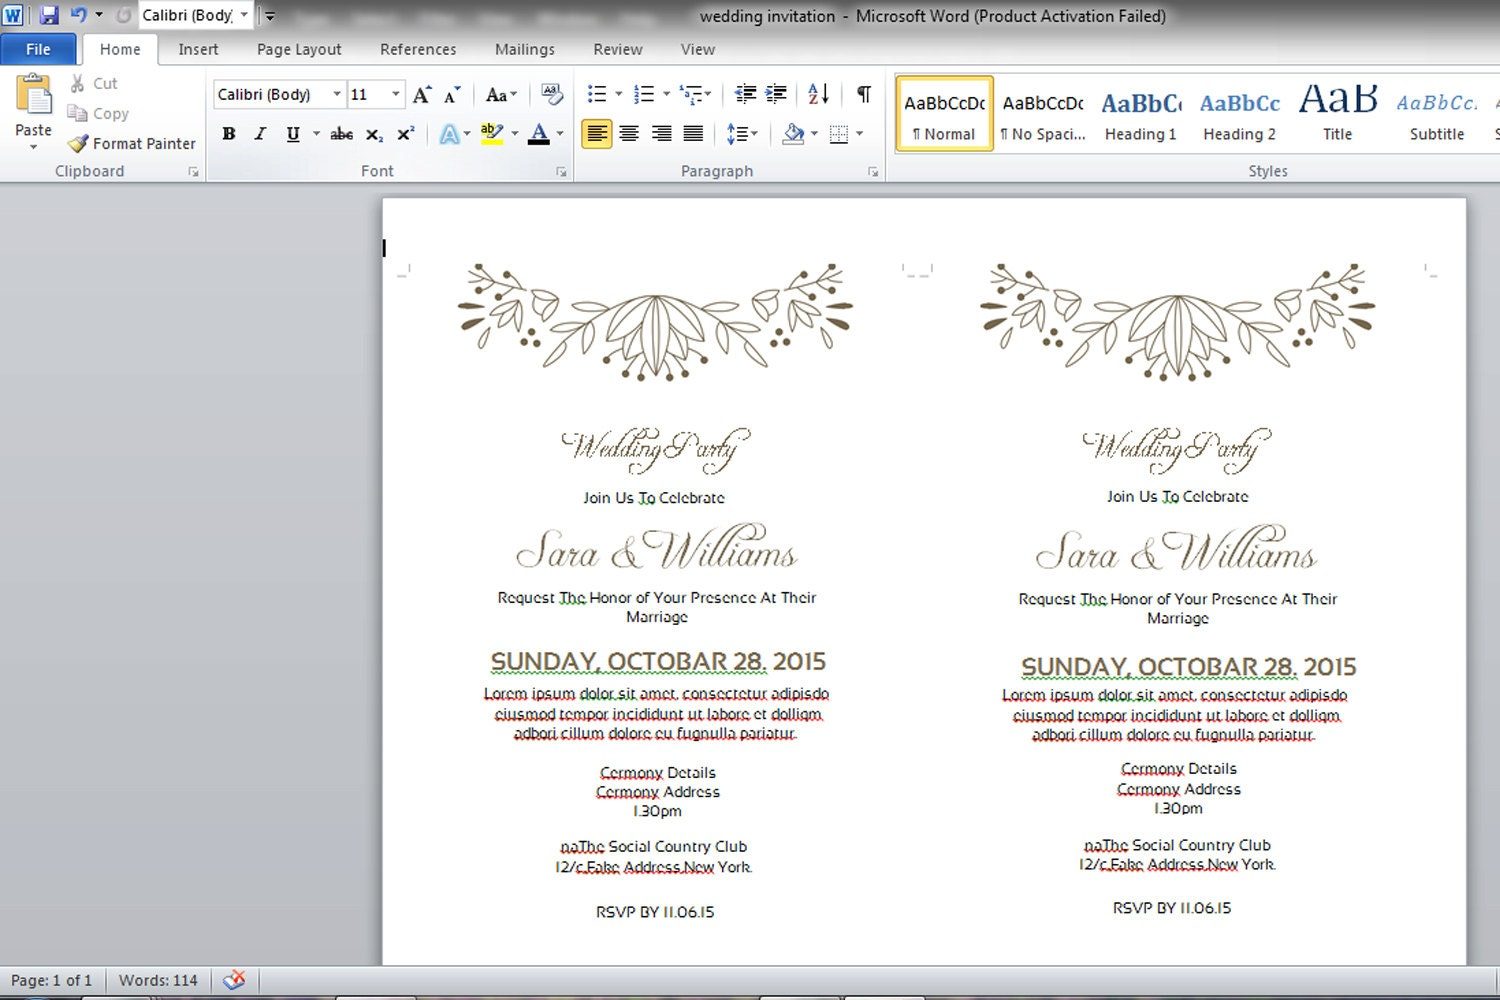 Birthday Invitation Using Microsoft Word Baby Shower Invitations - Birthday invitation using ms word